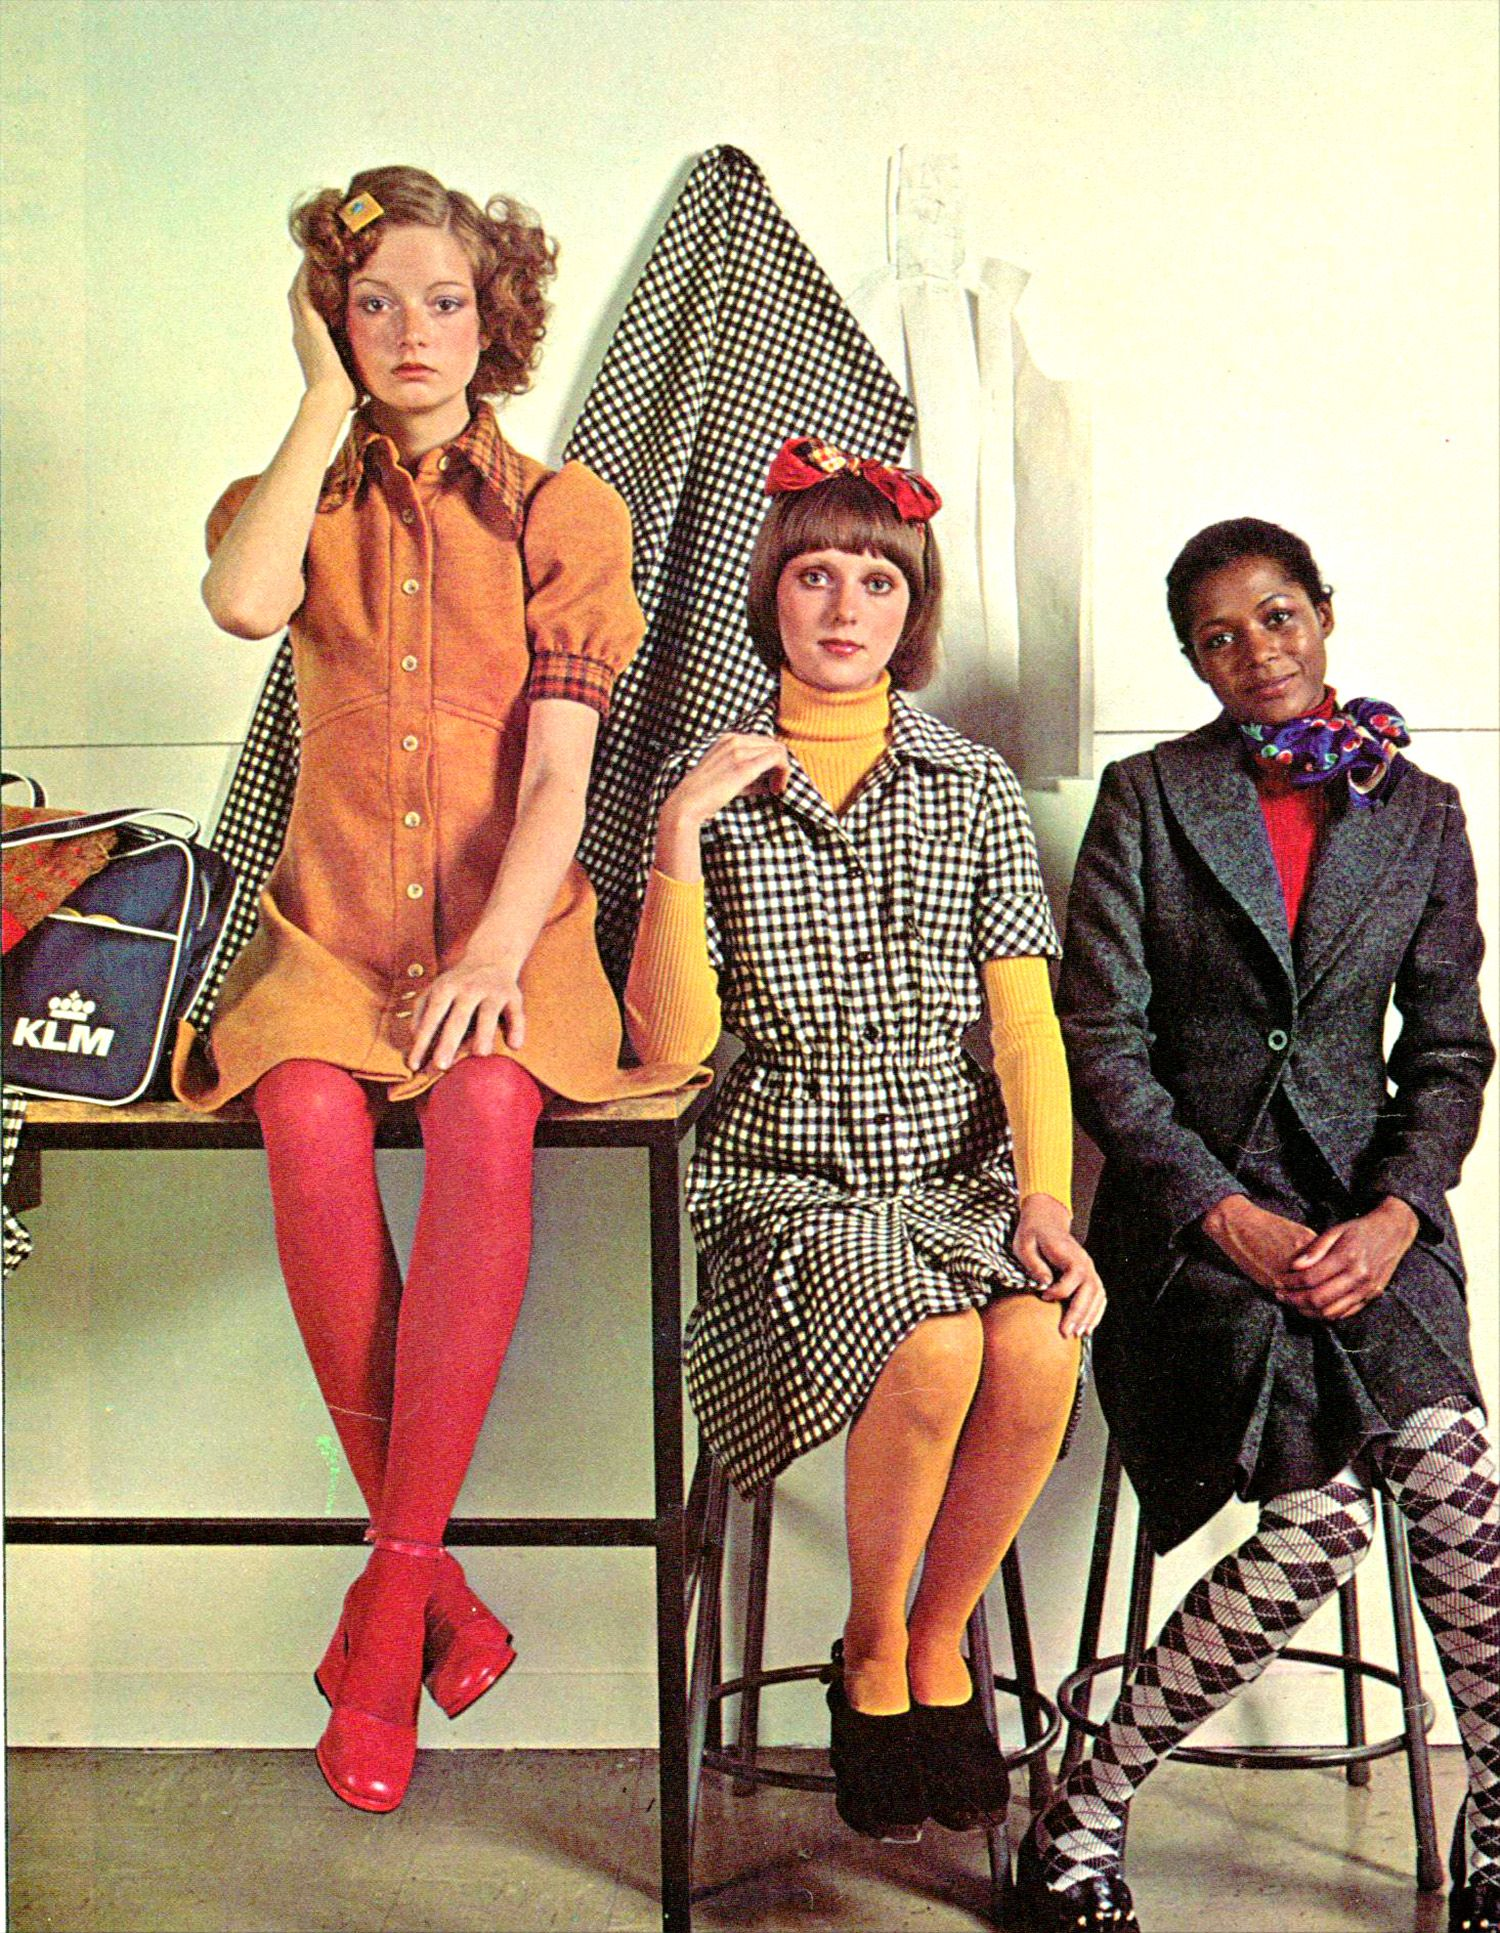 Women & Teen Fashions 1972: Defining the Seventies Style